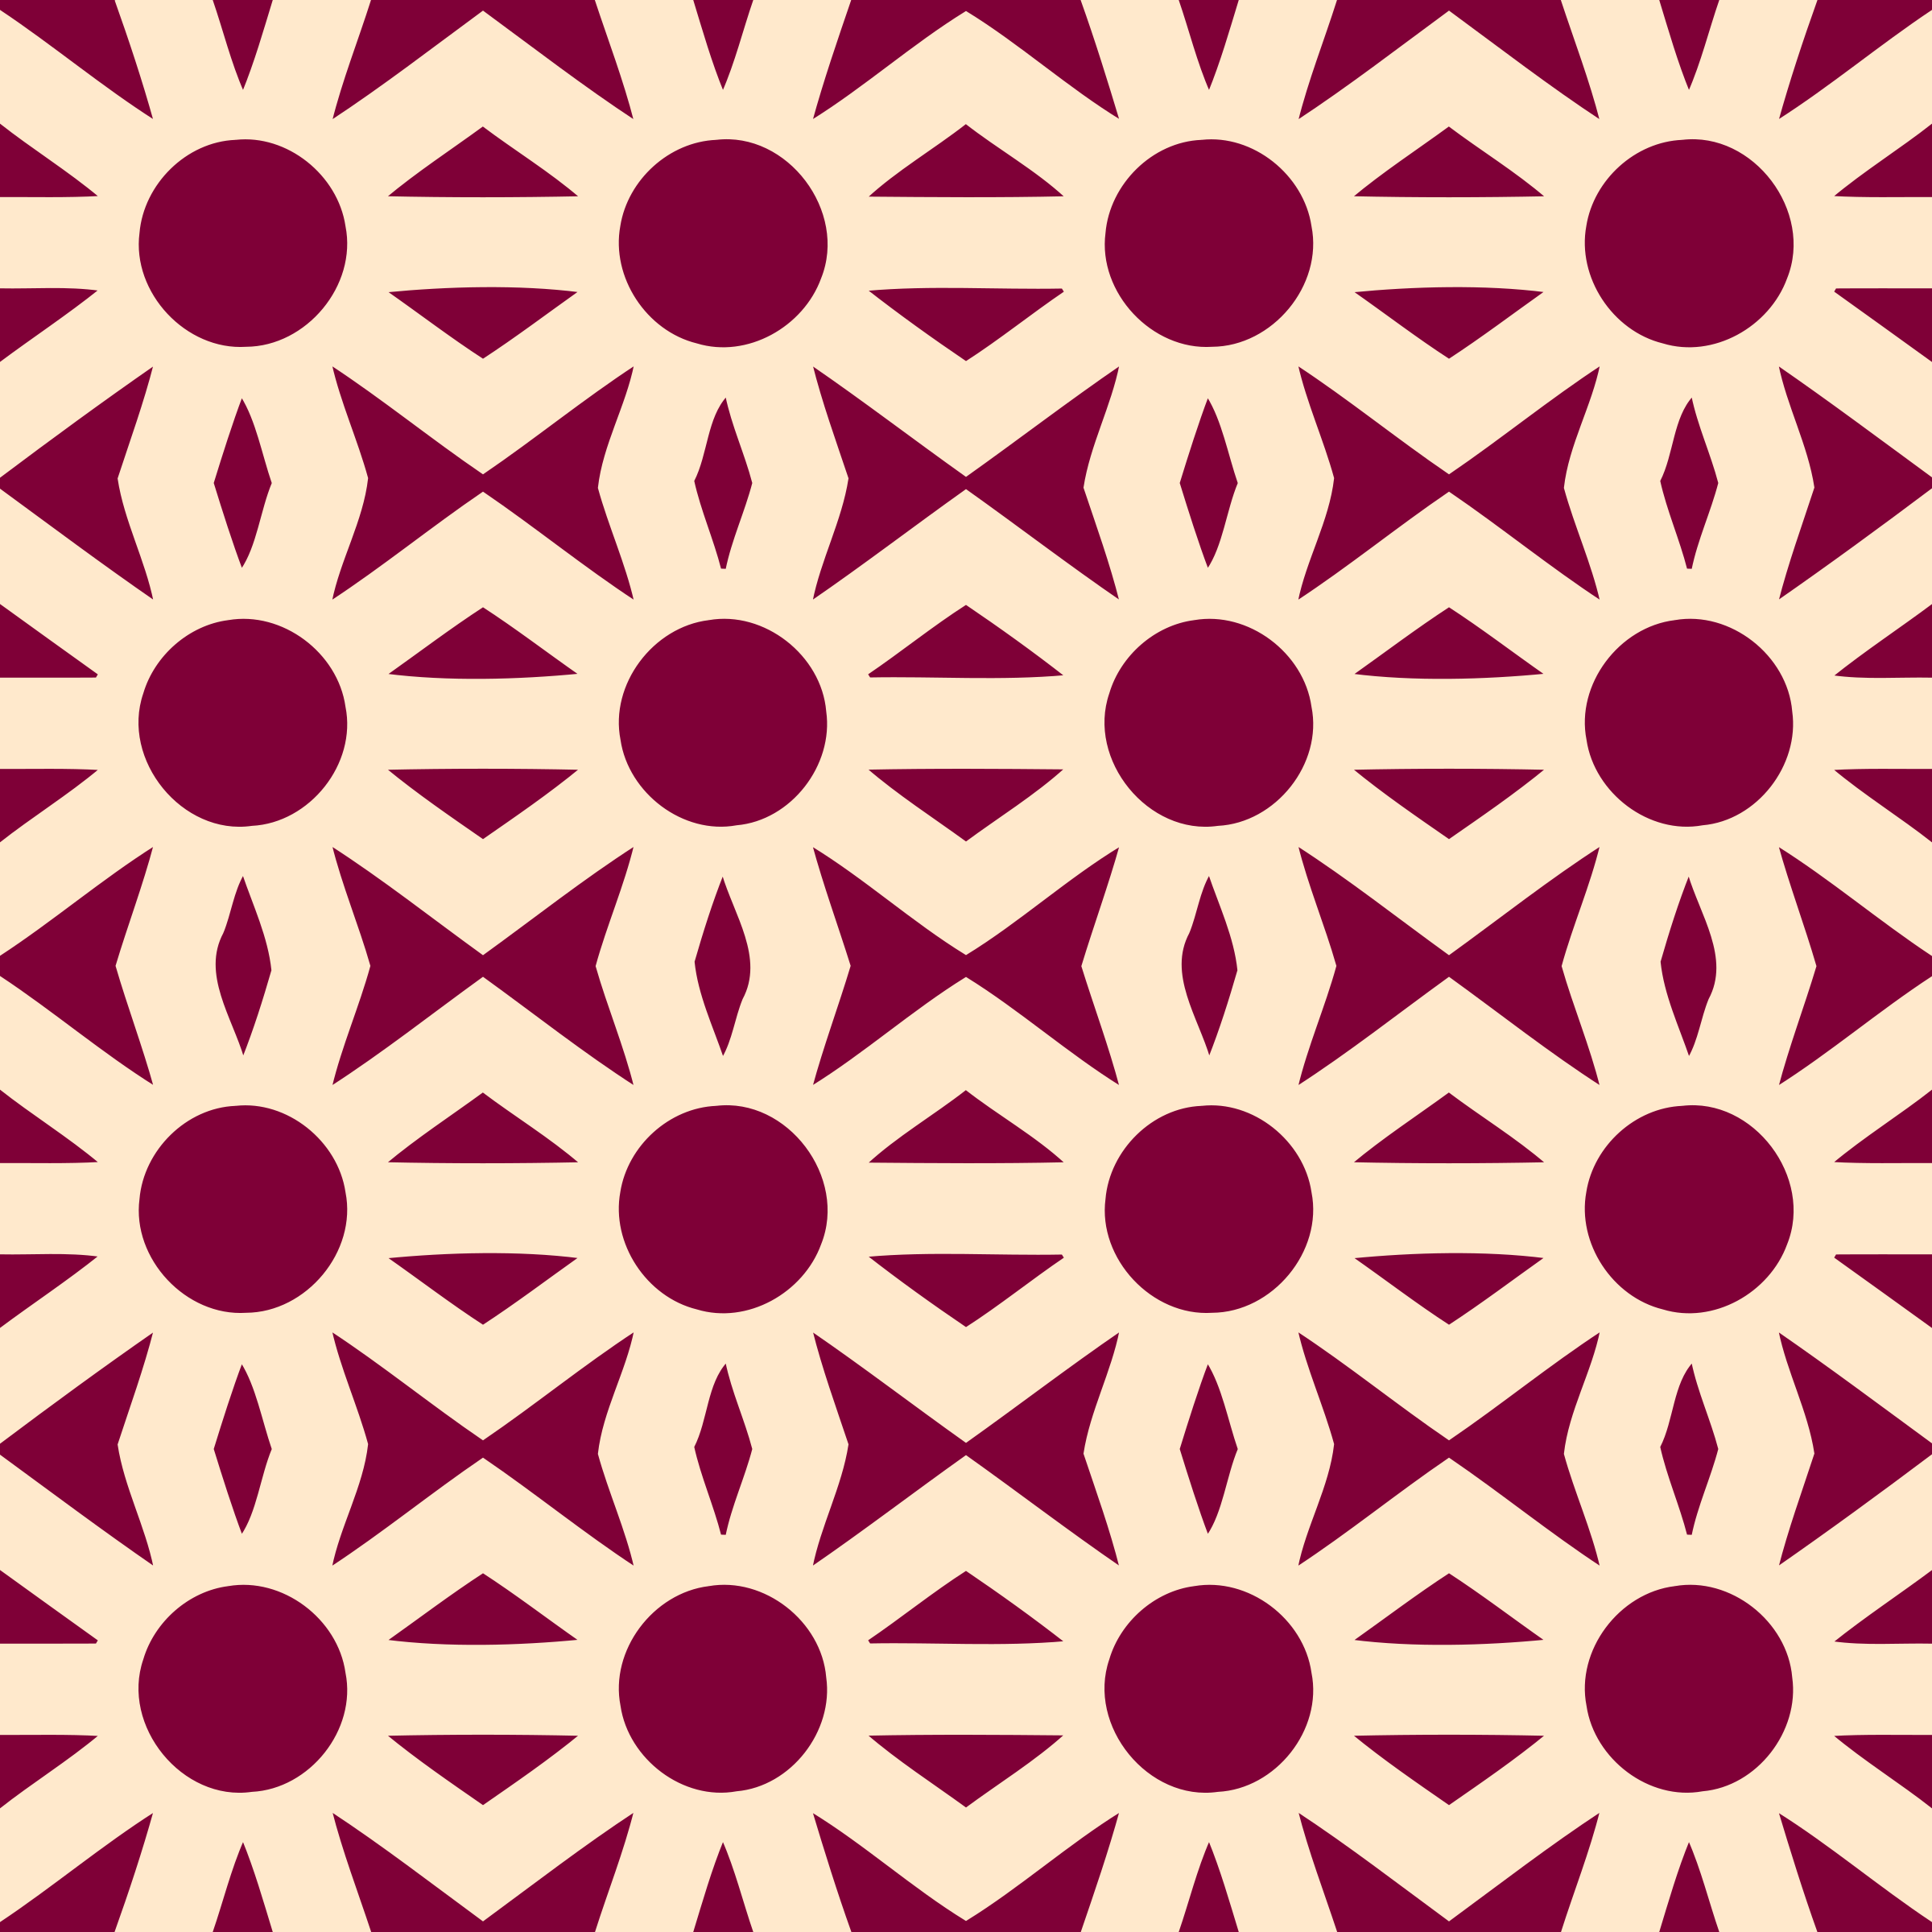 Background pattern 41 by Firkin